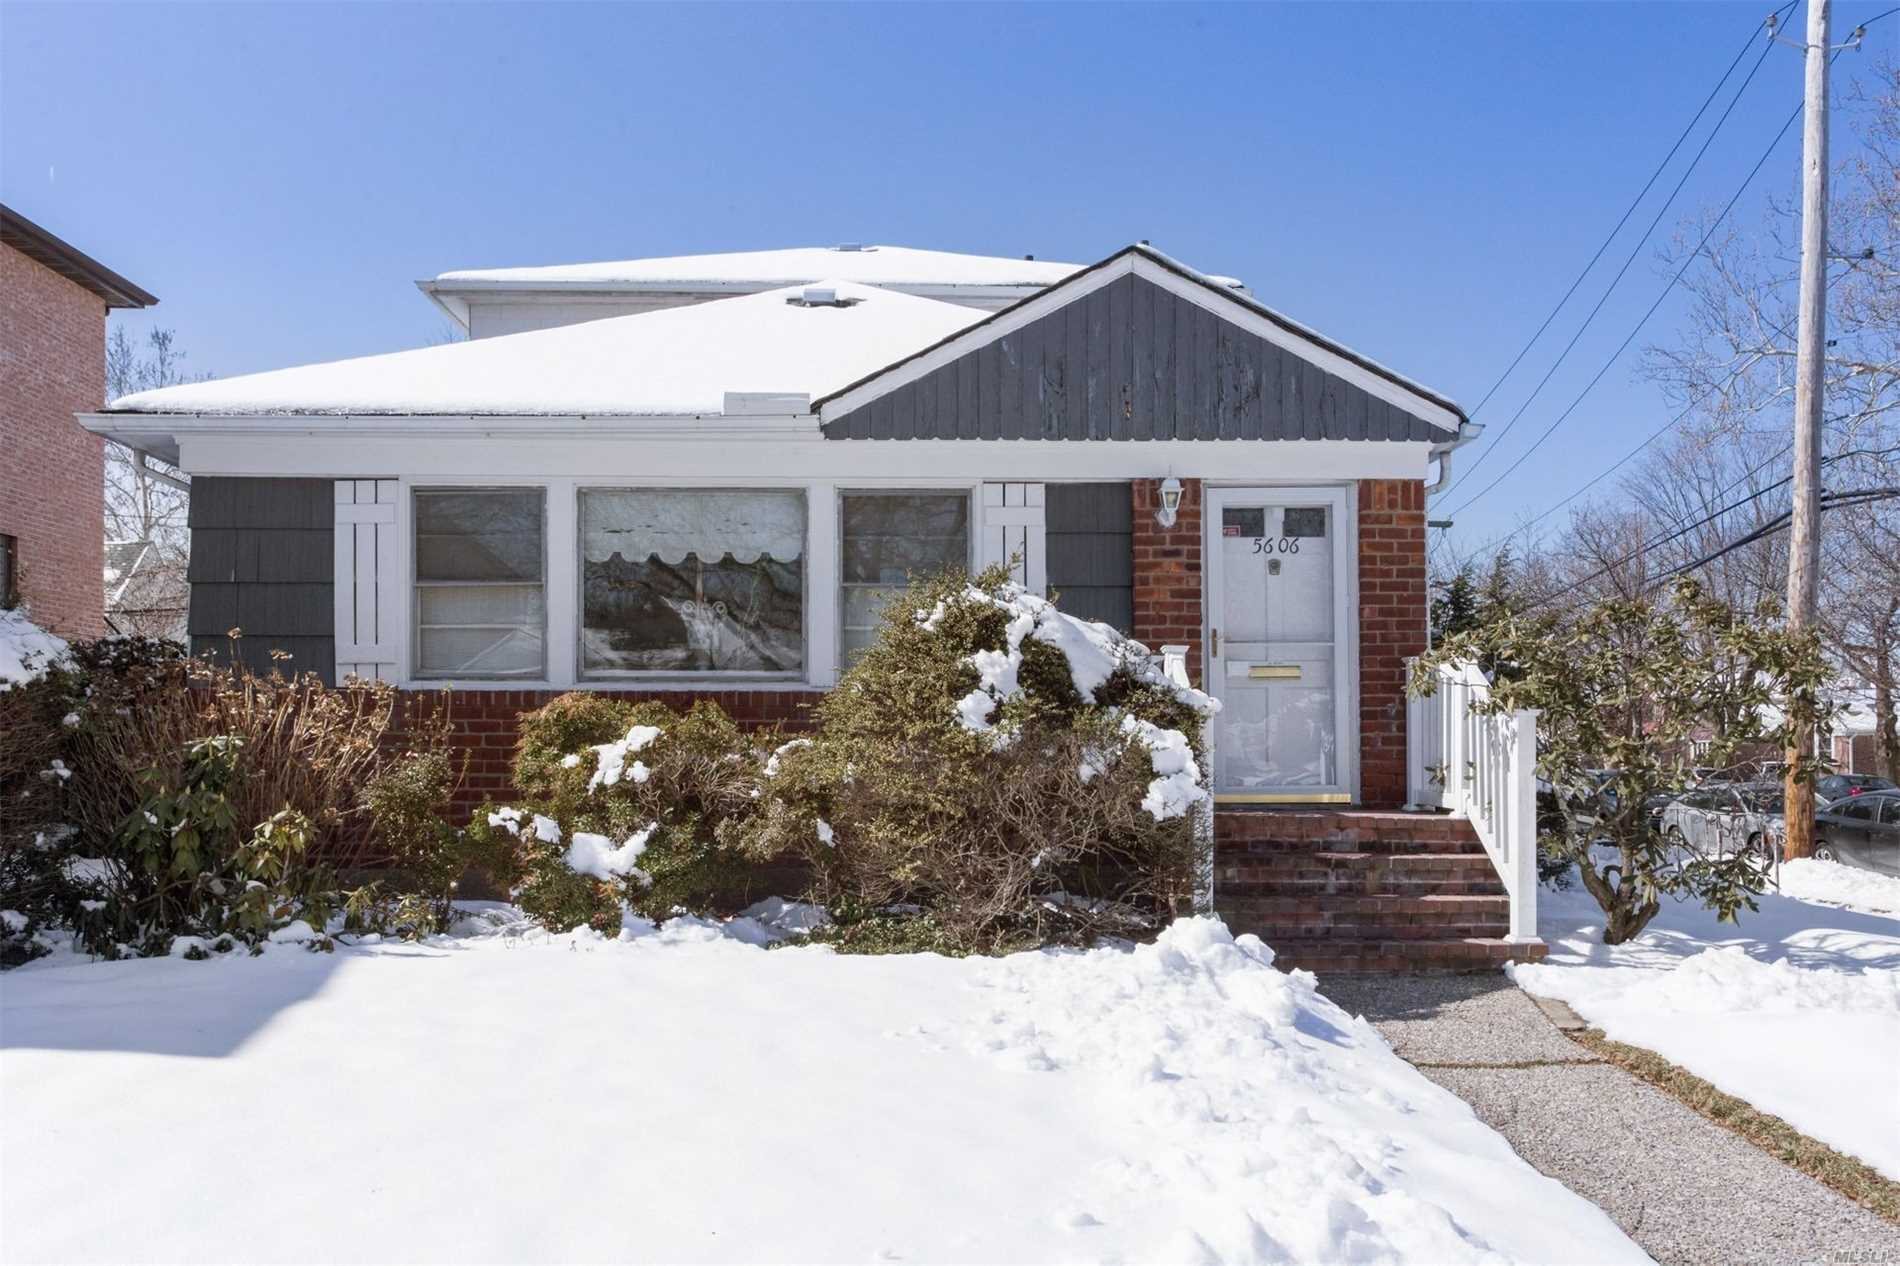 Expanded home on oversized property in perfect location. Close to Cardozo HS and Queensboro CC. Home boasts two stories, Master on the main level, two additional bedrooms and bath upstairs. Possibility of 4th bedroom, hardwood floors. Close to public transportation and shopping. All this and famed school district 26.